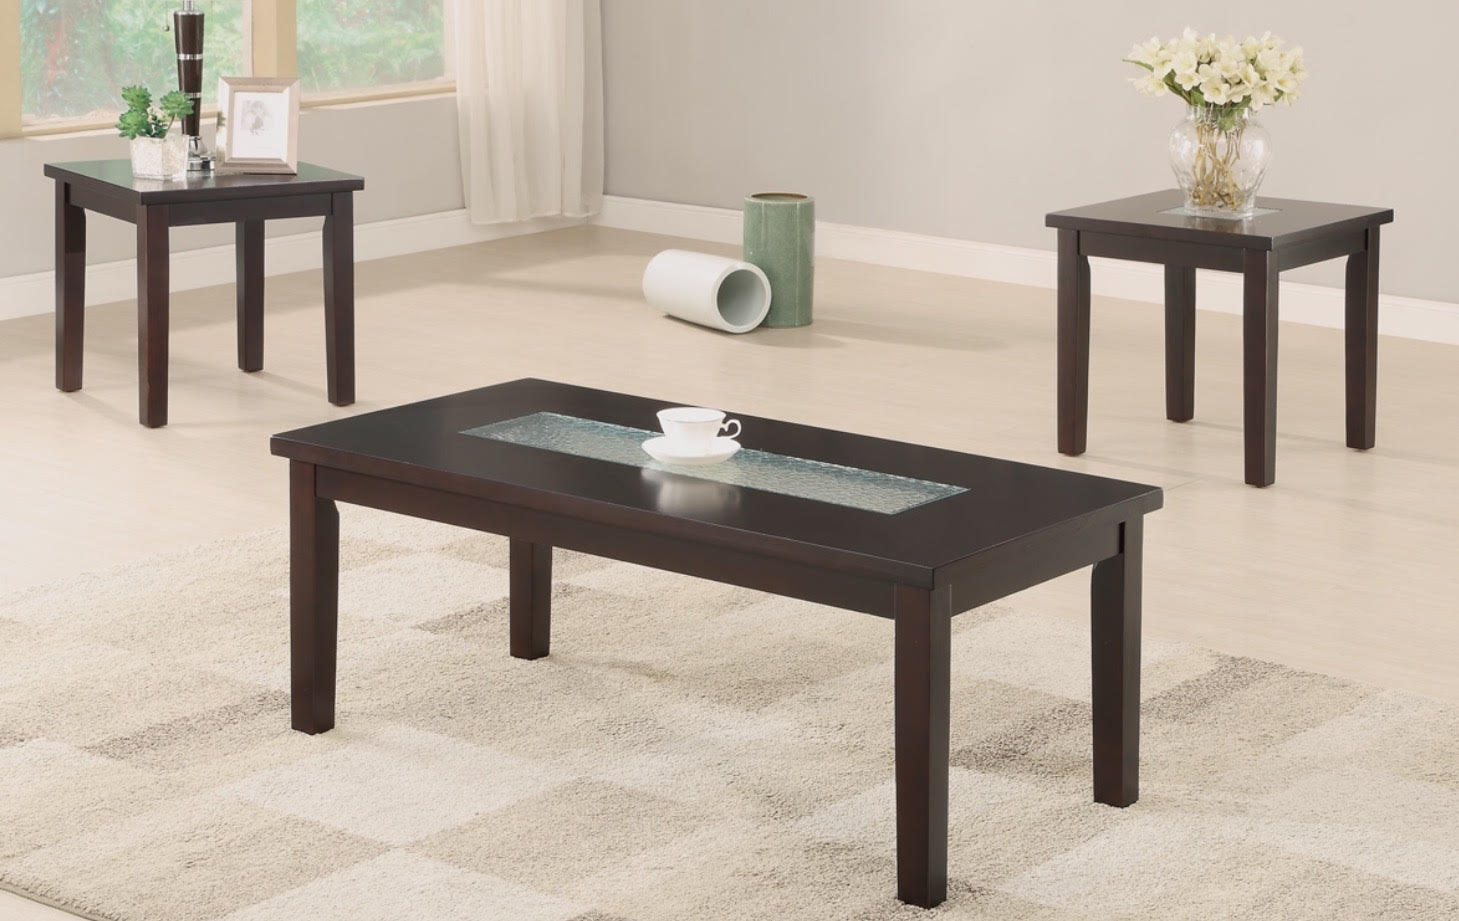 3-PCS COFFEE TABLE SET GLASS TOP & 3-PCS COFFEE TABLE SET GLASS TOP \u2014 American Discount Furniture